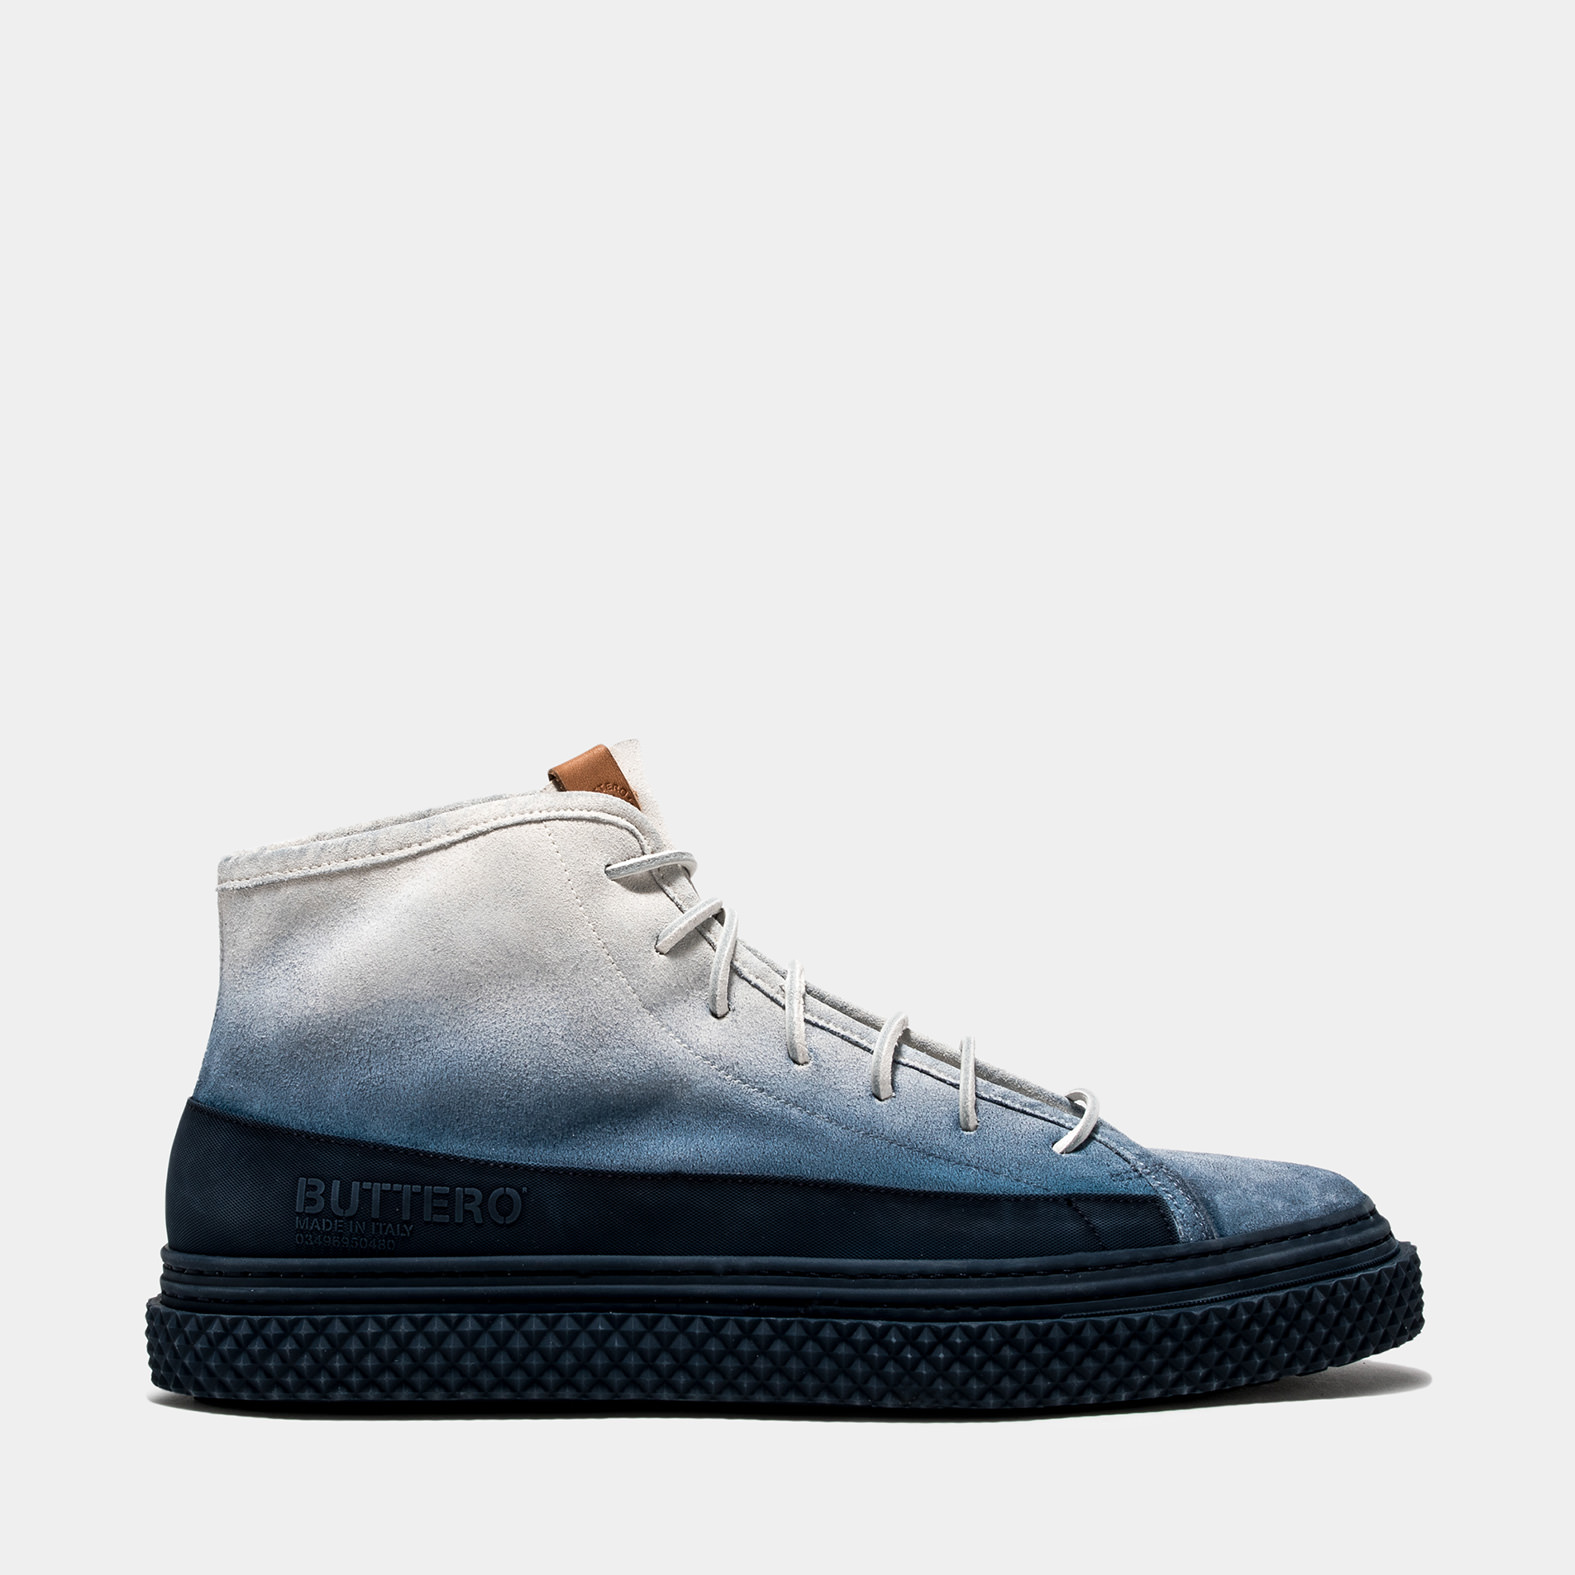 BUTTERO: SNEAKER MID BRIGATA IN SUEDE DEGRADE' BLUETTE